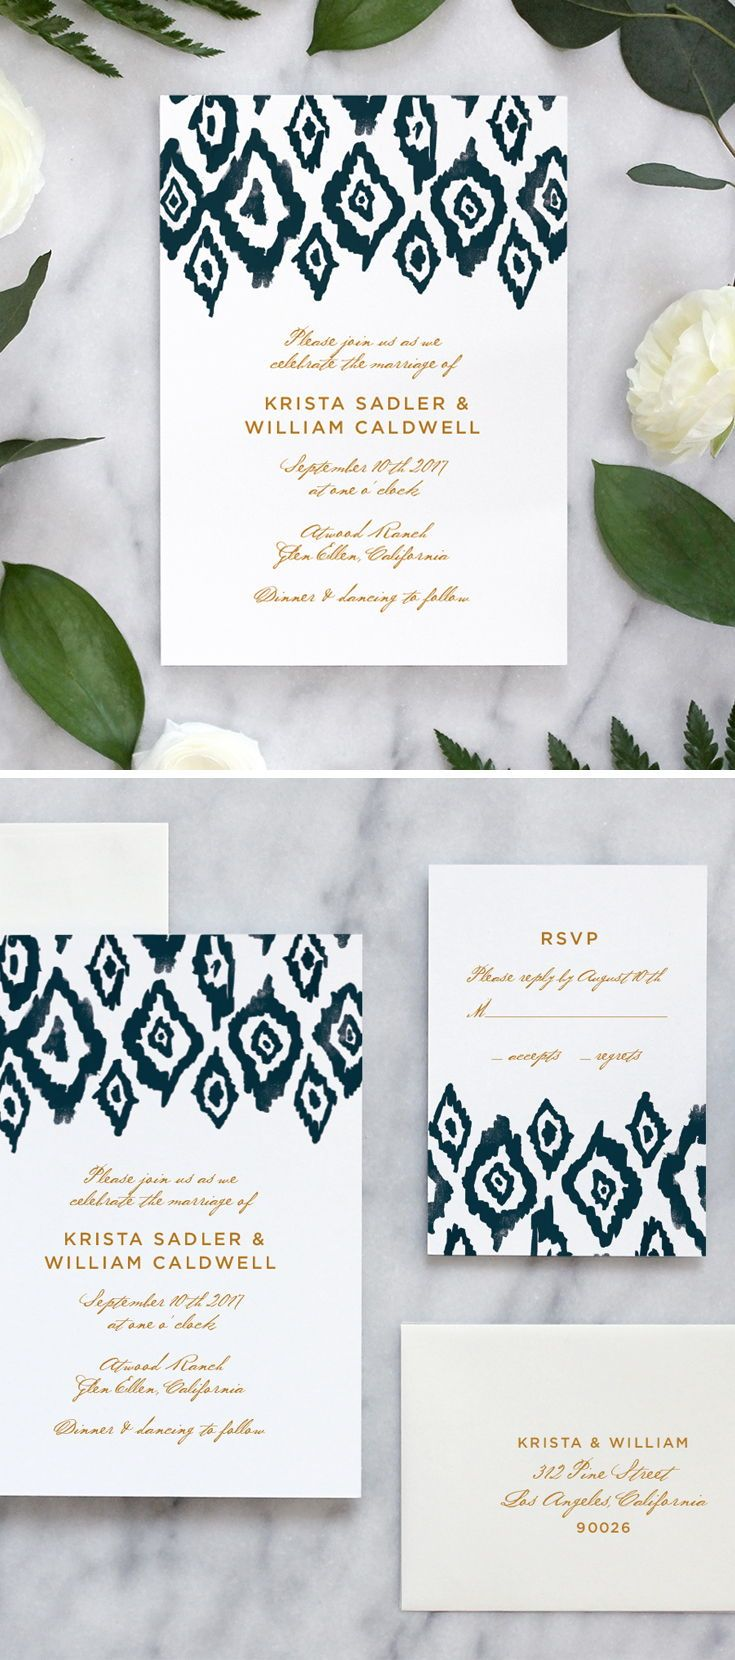 465 Best Planning A Wedding Images On Pinterest Accommodations